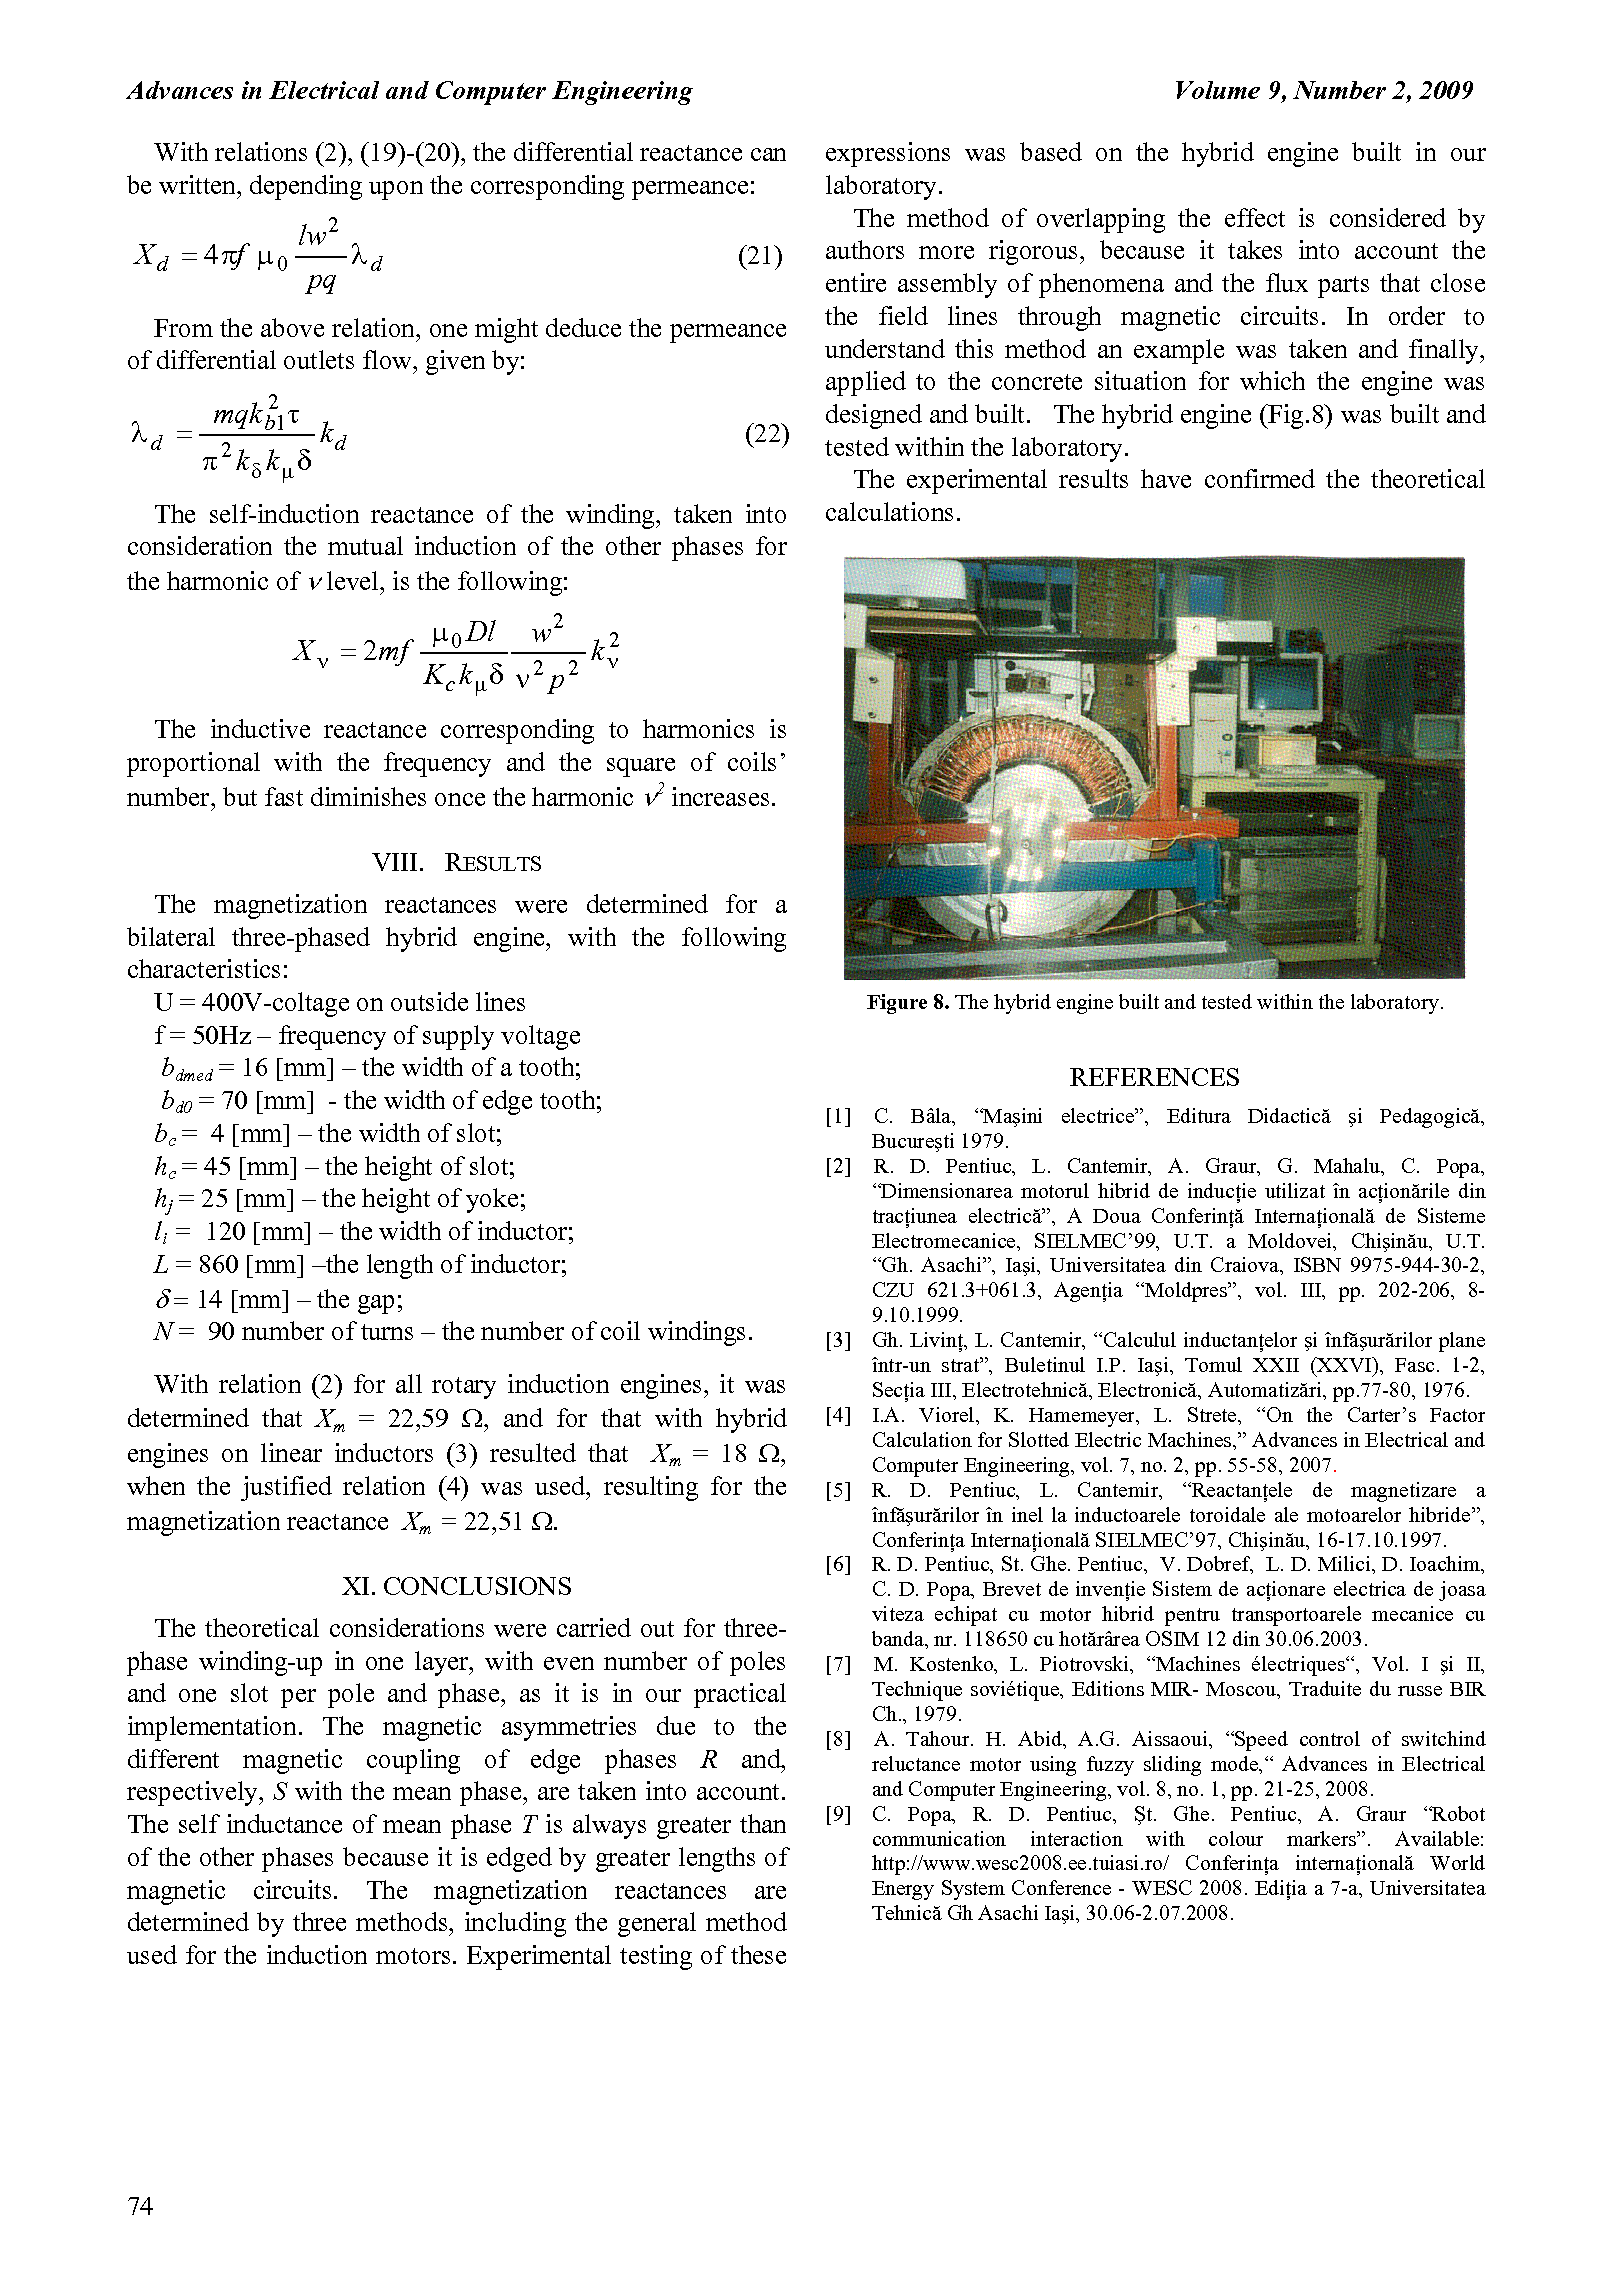 PDF Quickview for paper with DOI:10.4316/AECE.2009.02011